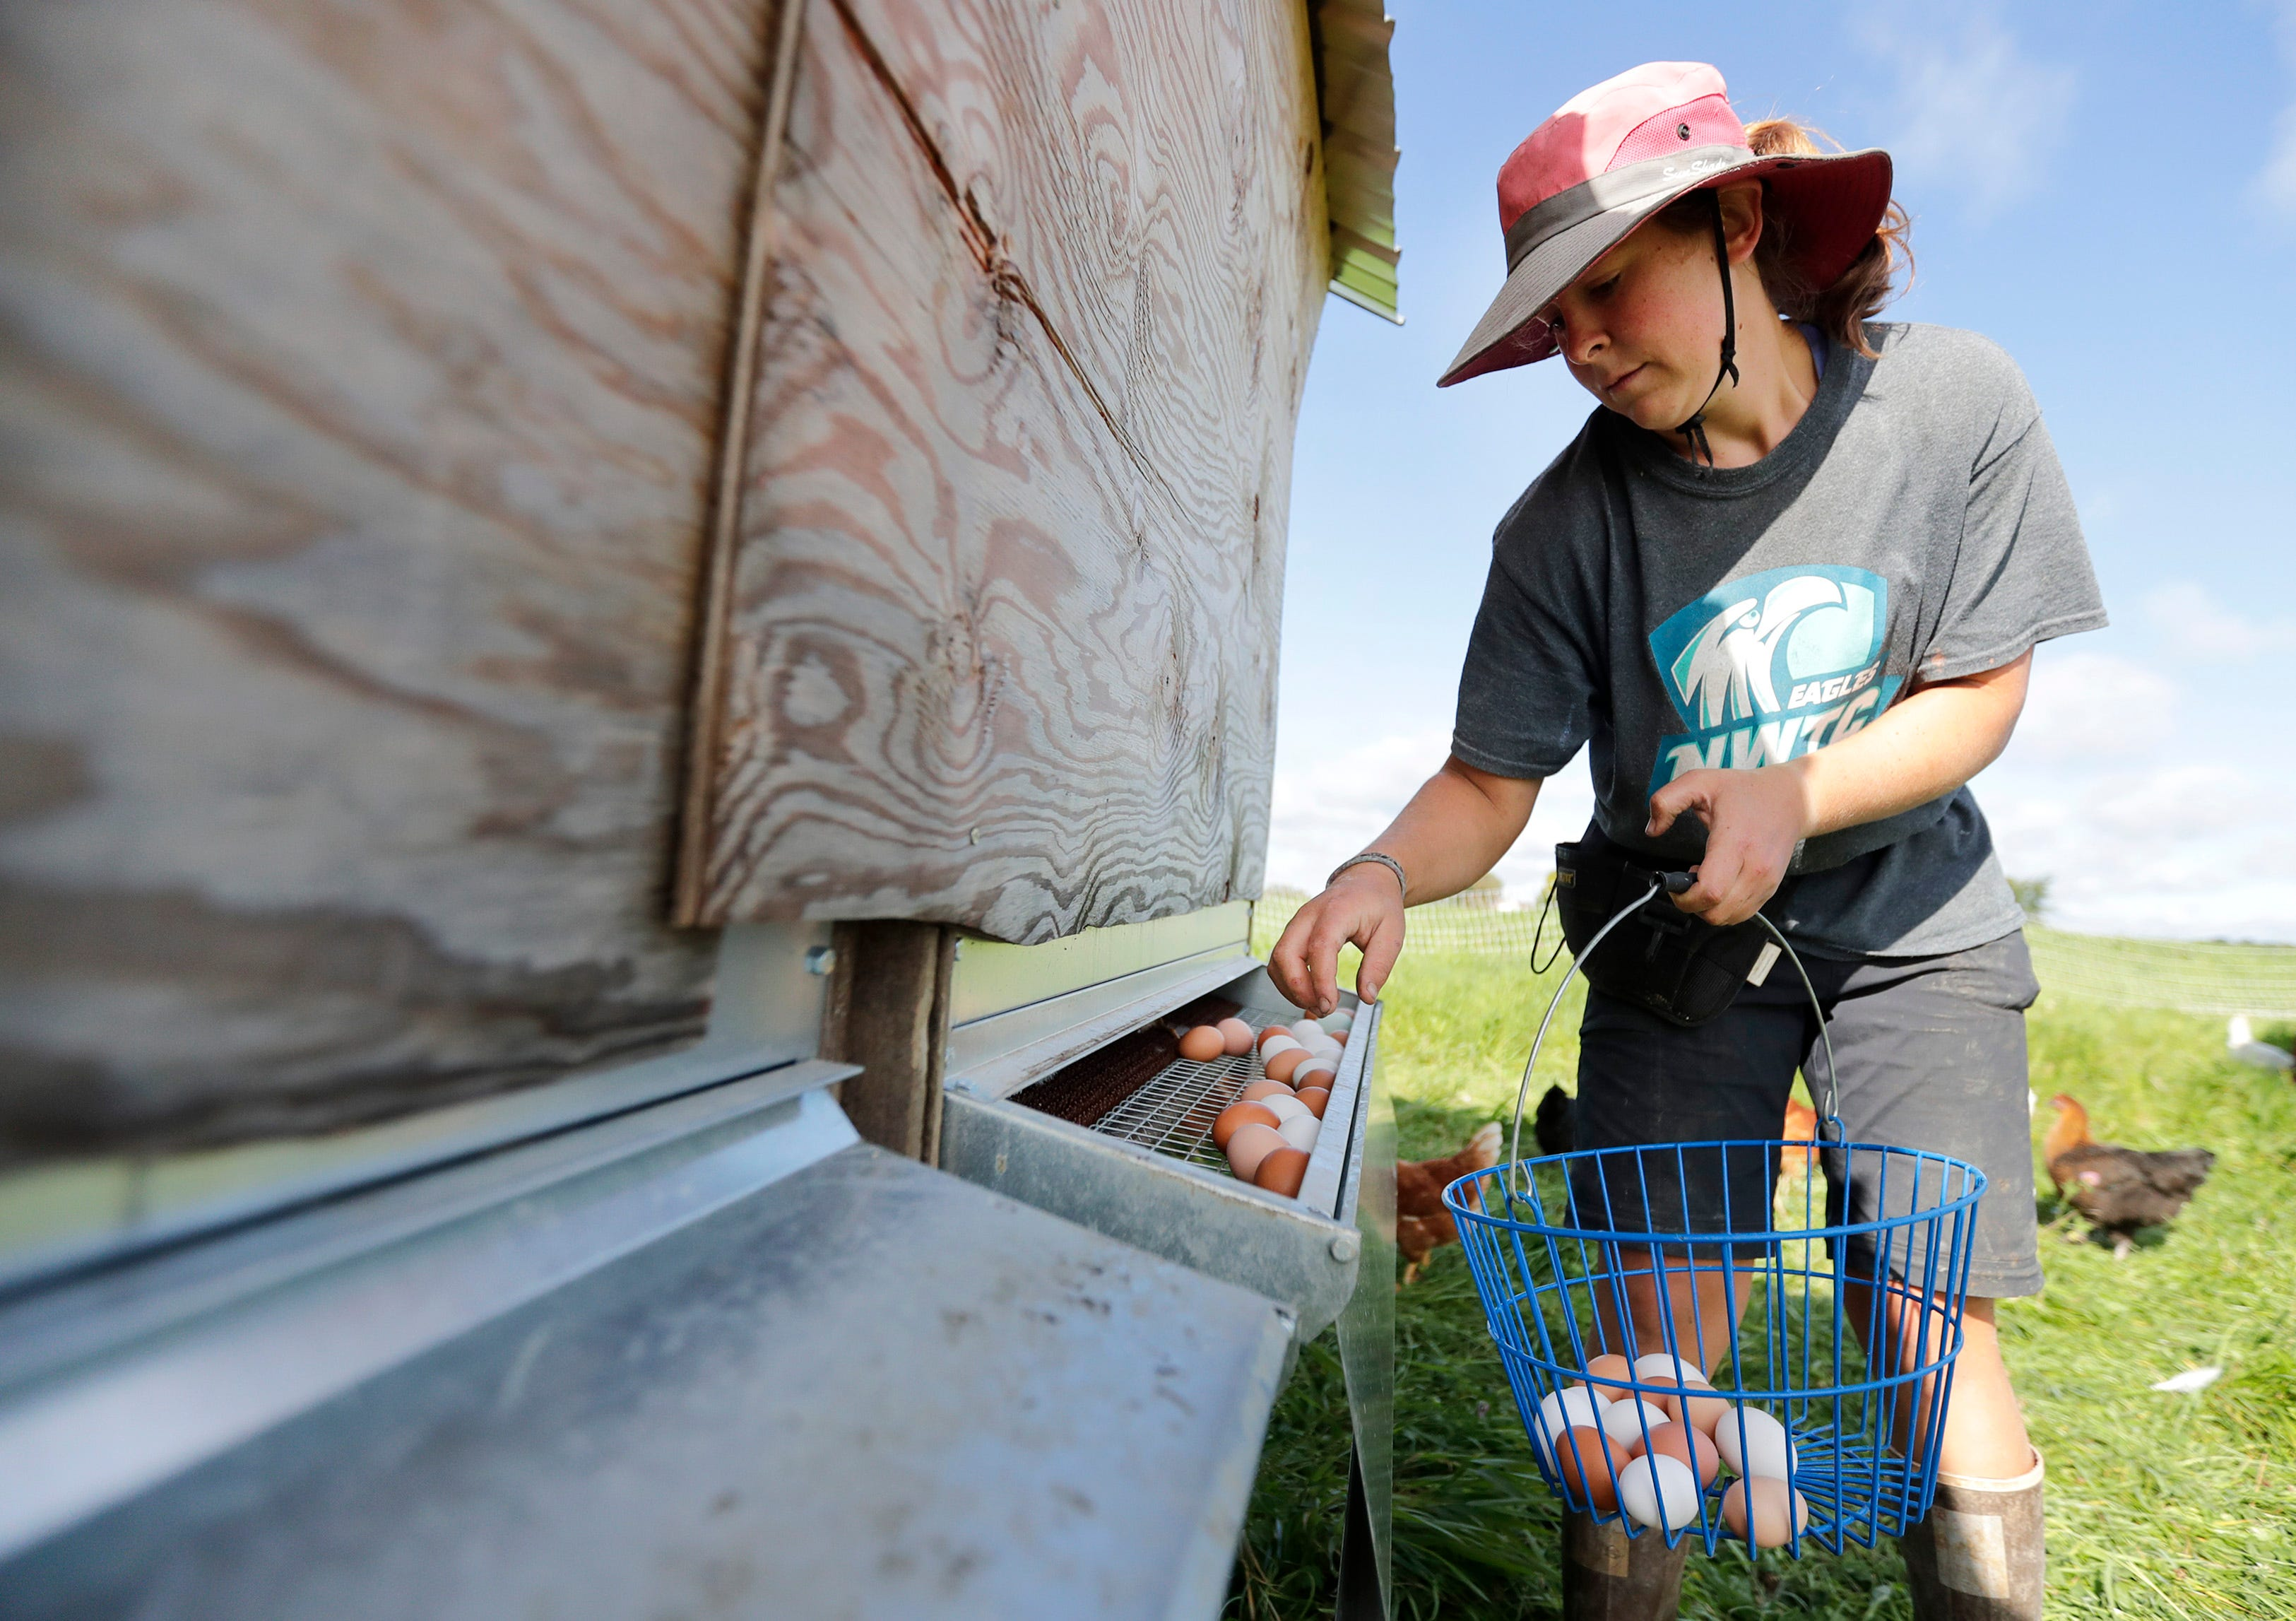 Heather Toman, with Full Circle Community Farm, collects eggs Tuesday, Aug. 27, 2019 in Seymour, Wis.